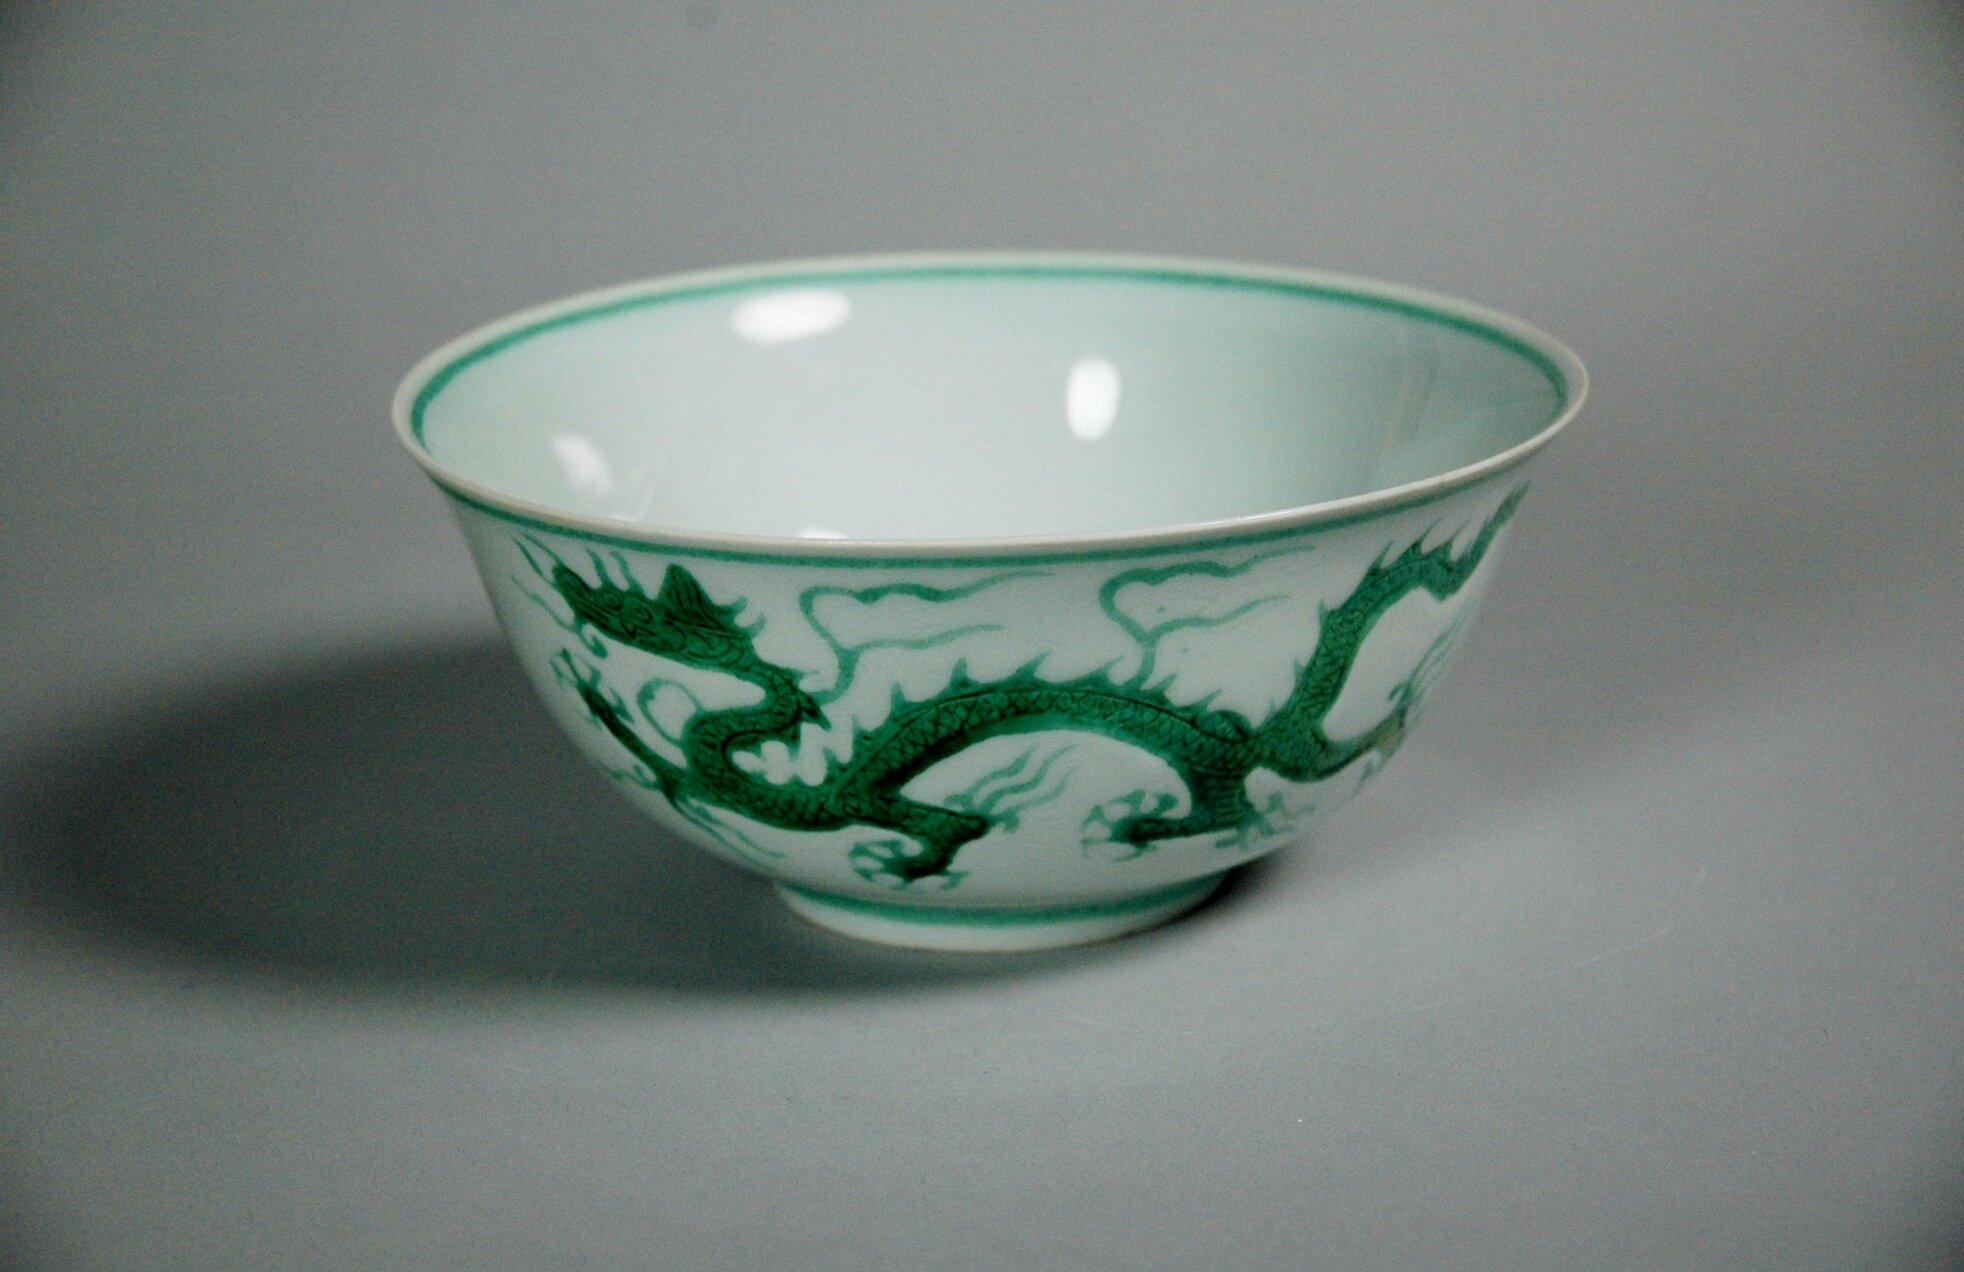 Bowl with Dragon, Ming dynasty (1368–1644), Zhengde mark and period (1506–21), mid-16th century